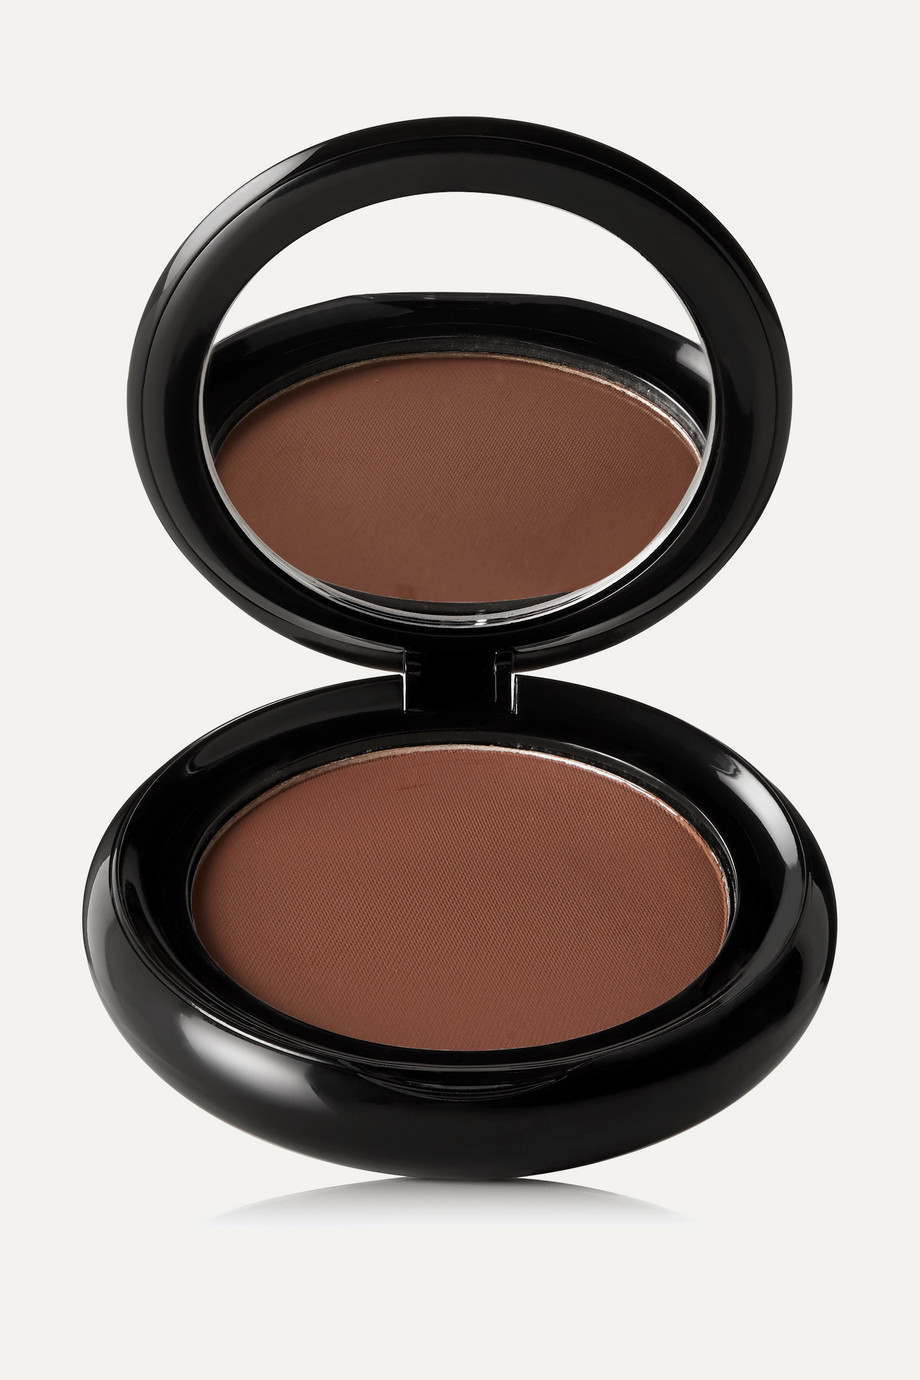 Marc Jacobs Beauty O!mega Shadow Gel Powder Eyeshadow - Daddi-O! 530